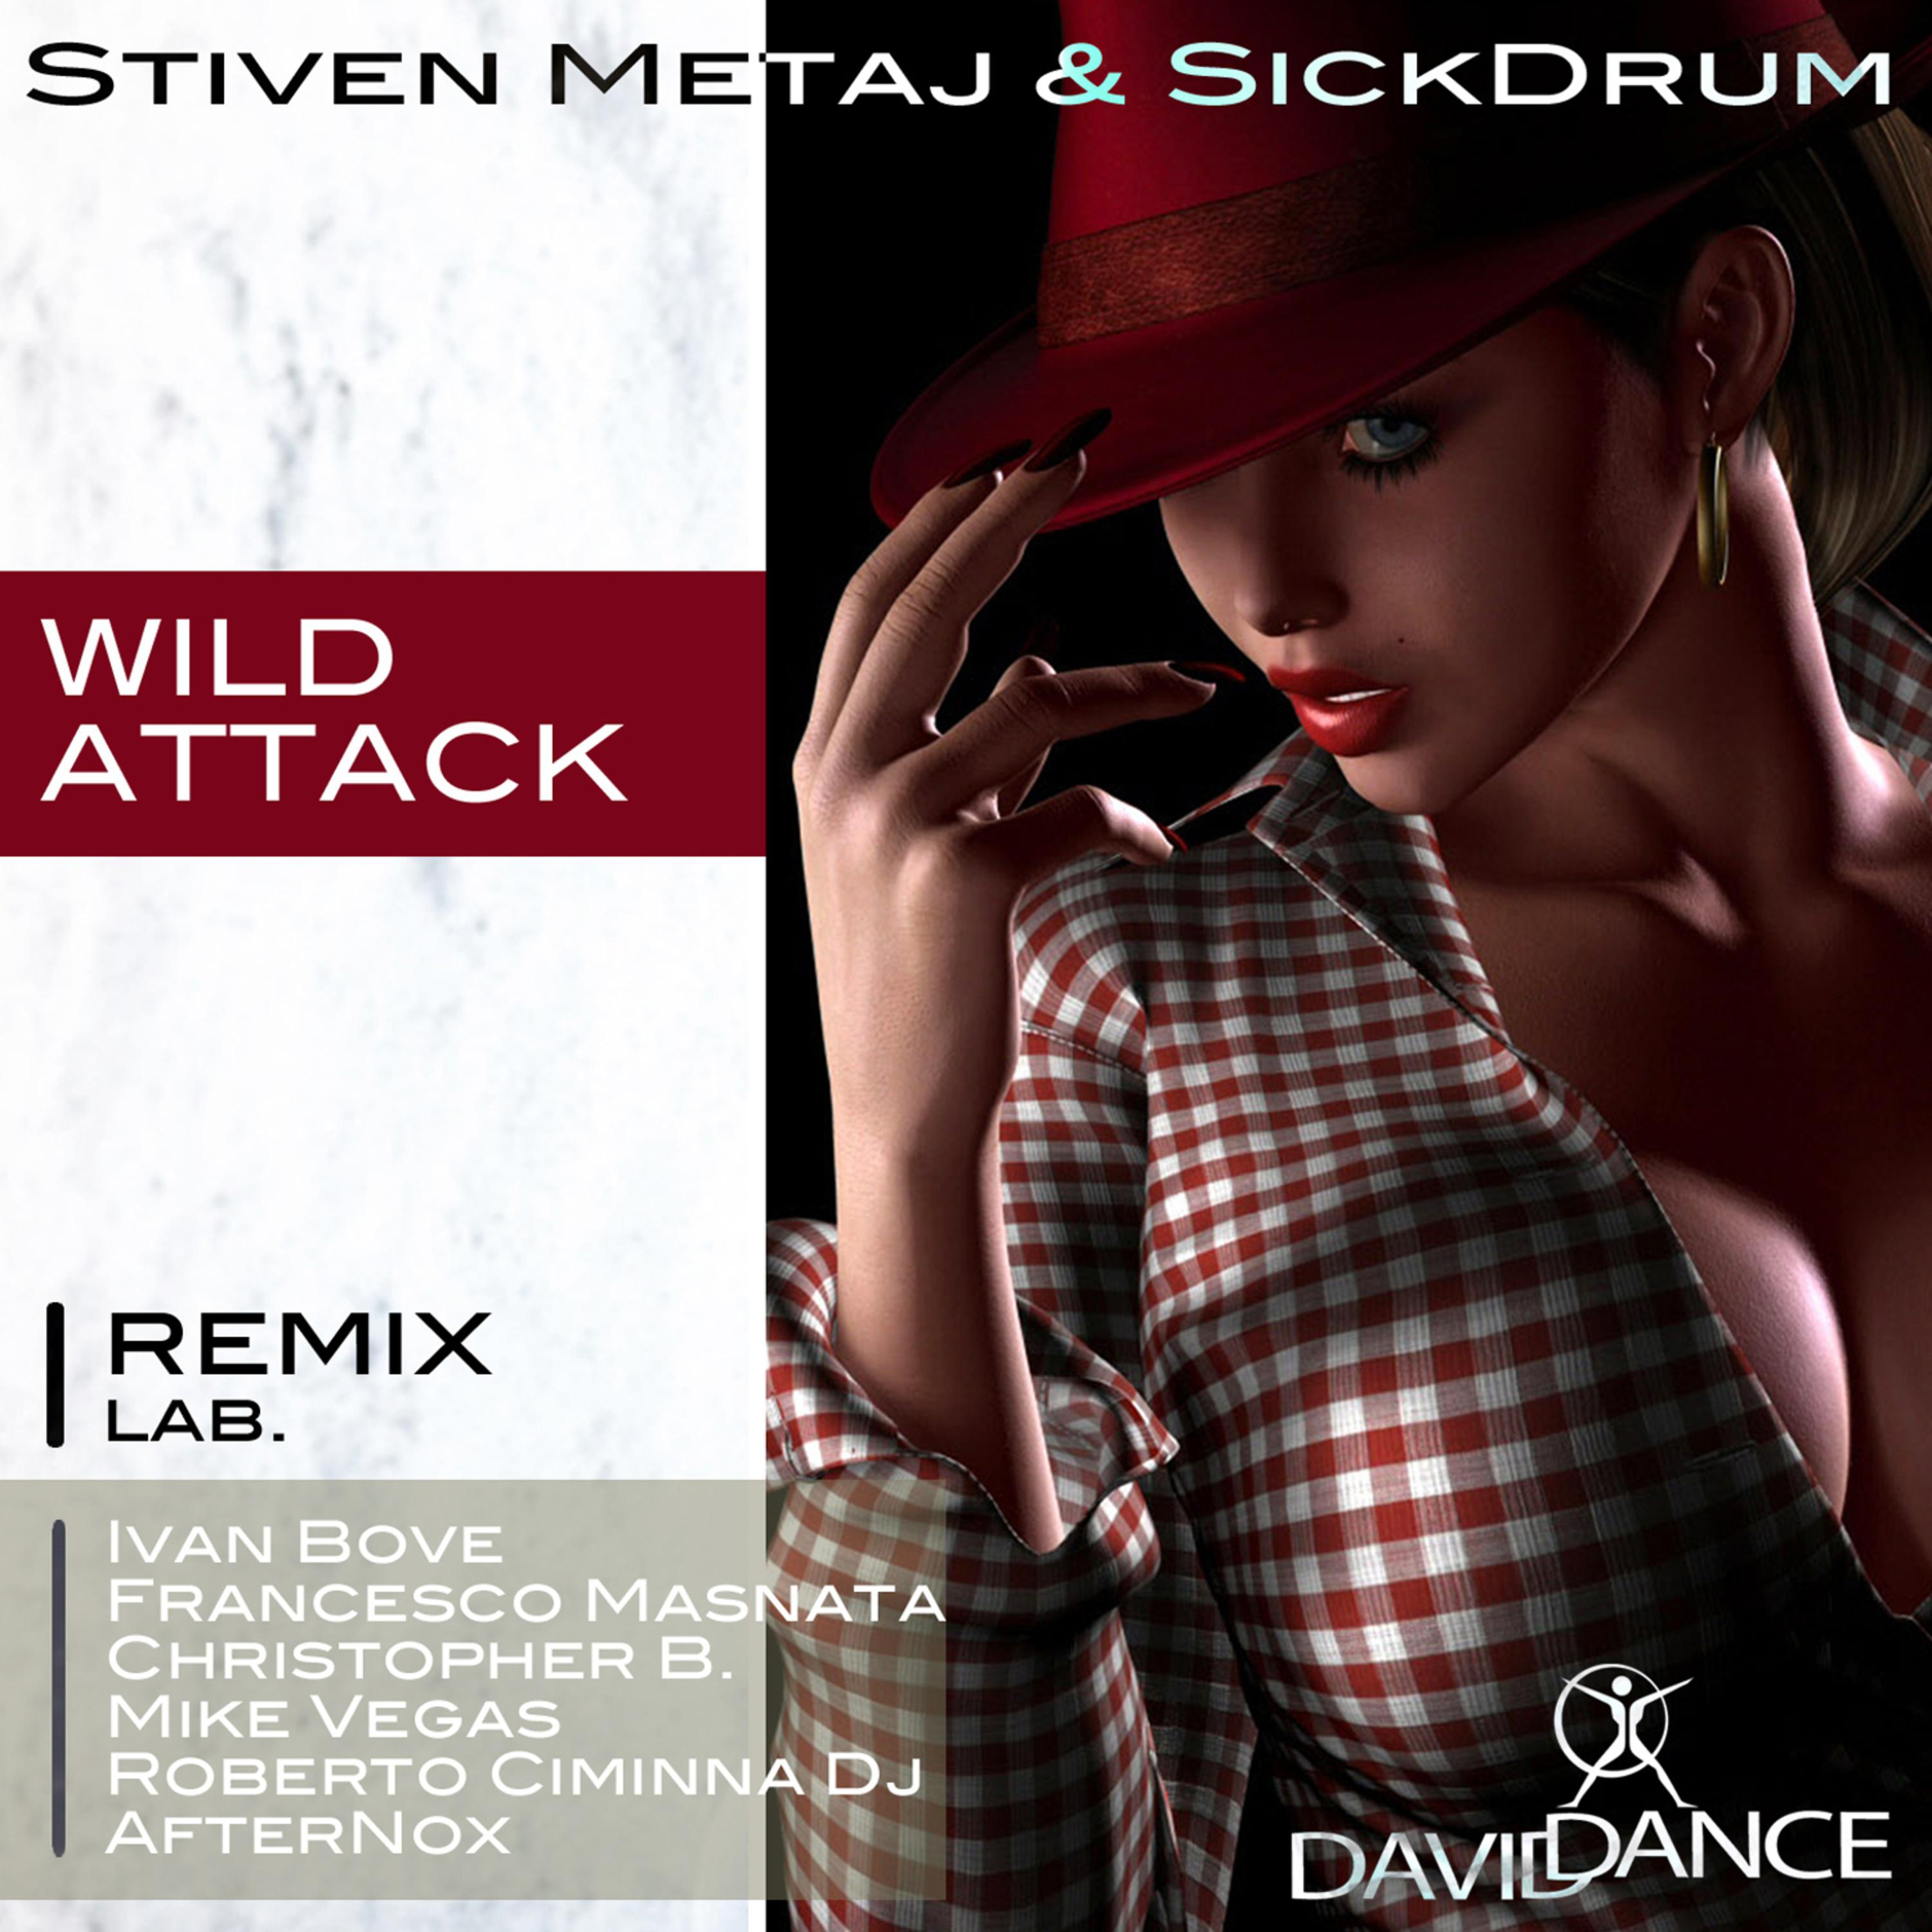 Stiven Metaj - Wild Attack (Original mix)